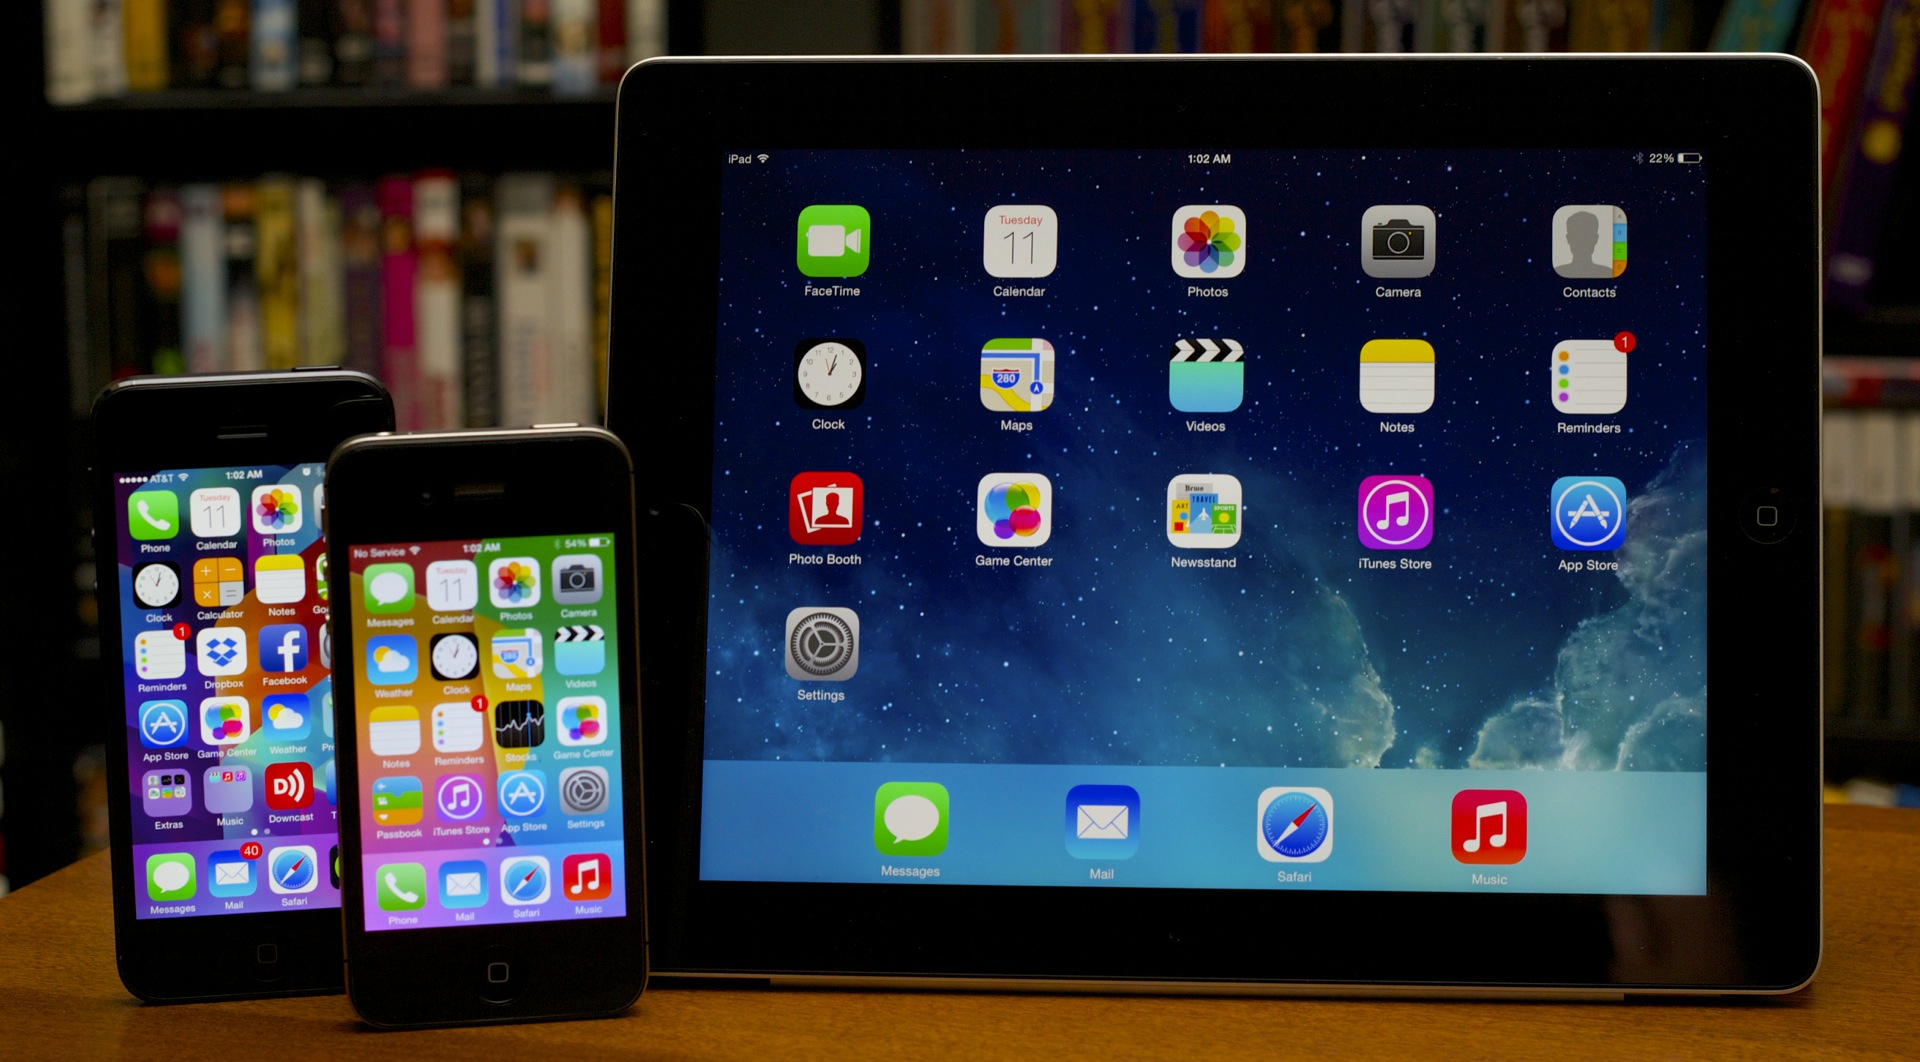 iOS 8 will likely be a refinement of iOS 7's design.